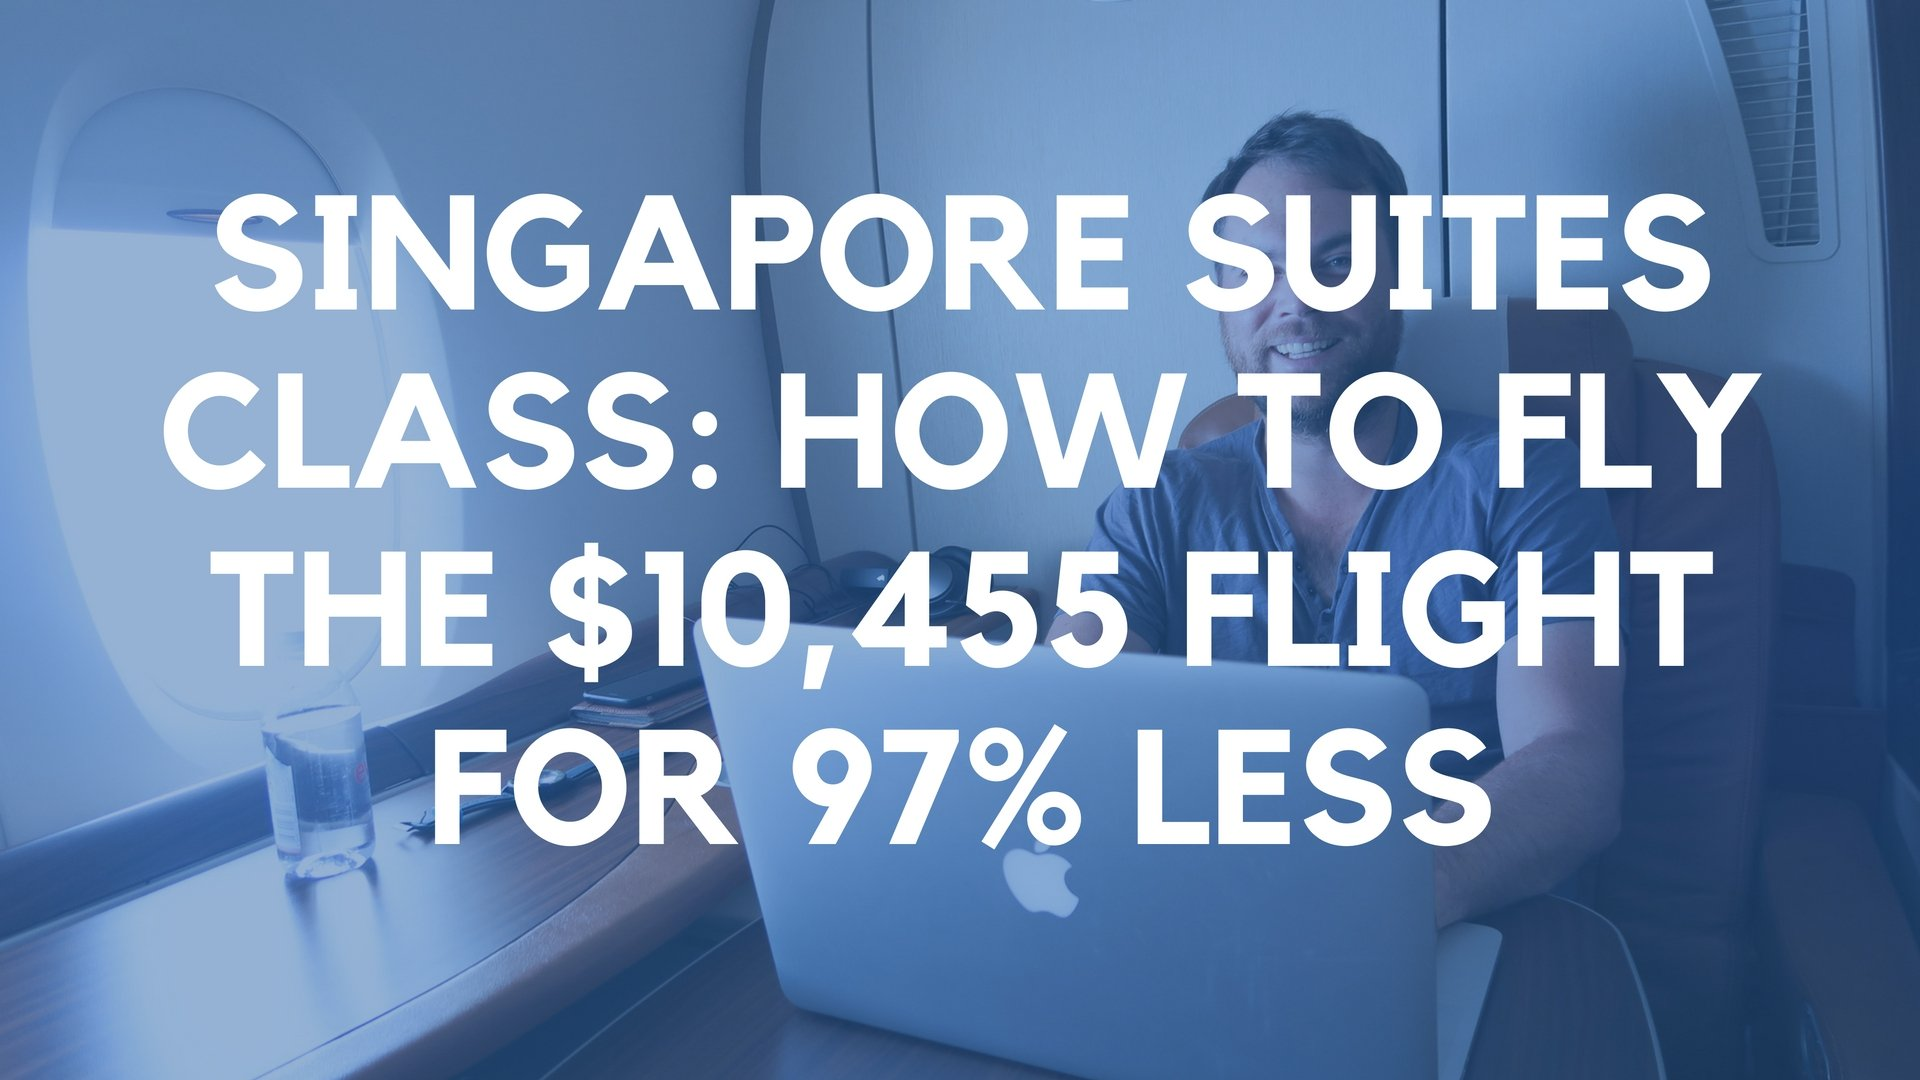 Singapore Suites Class: How to Fly the $10,455 Flight for 97% Less